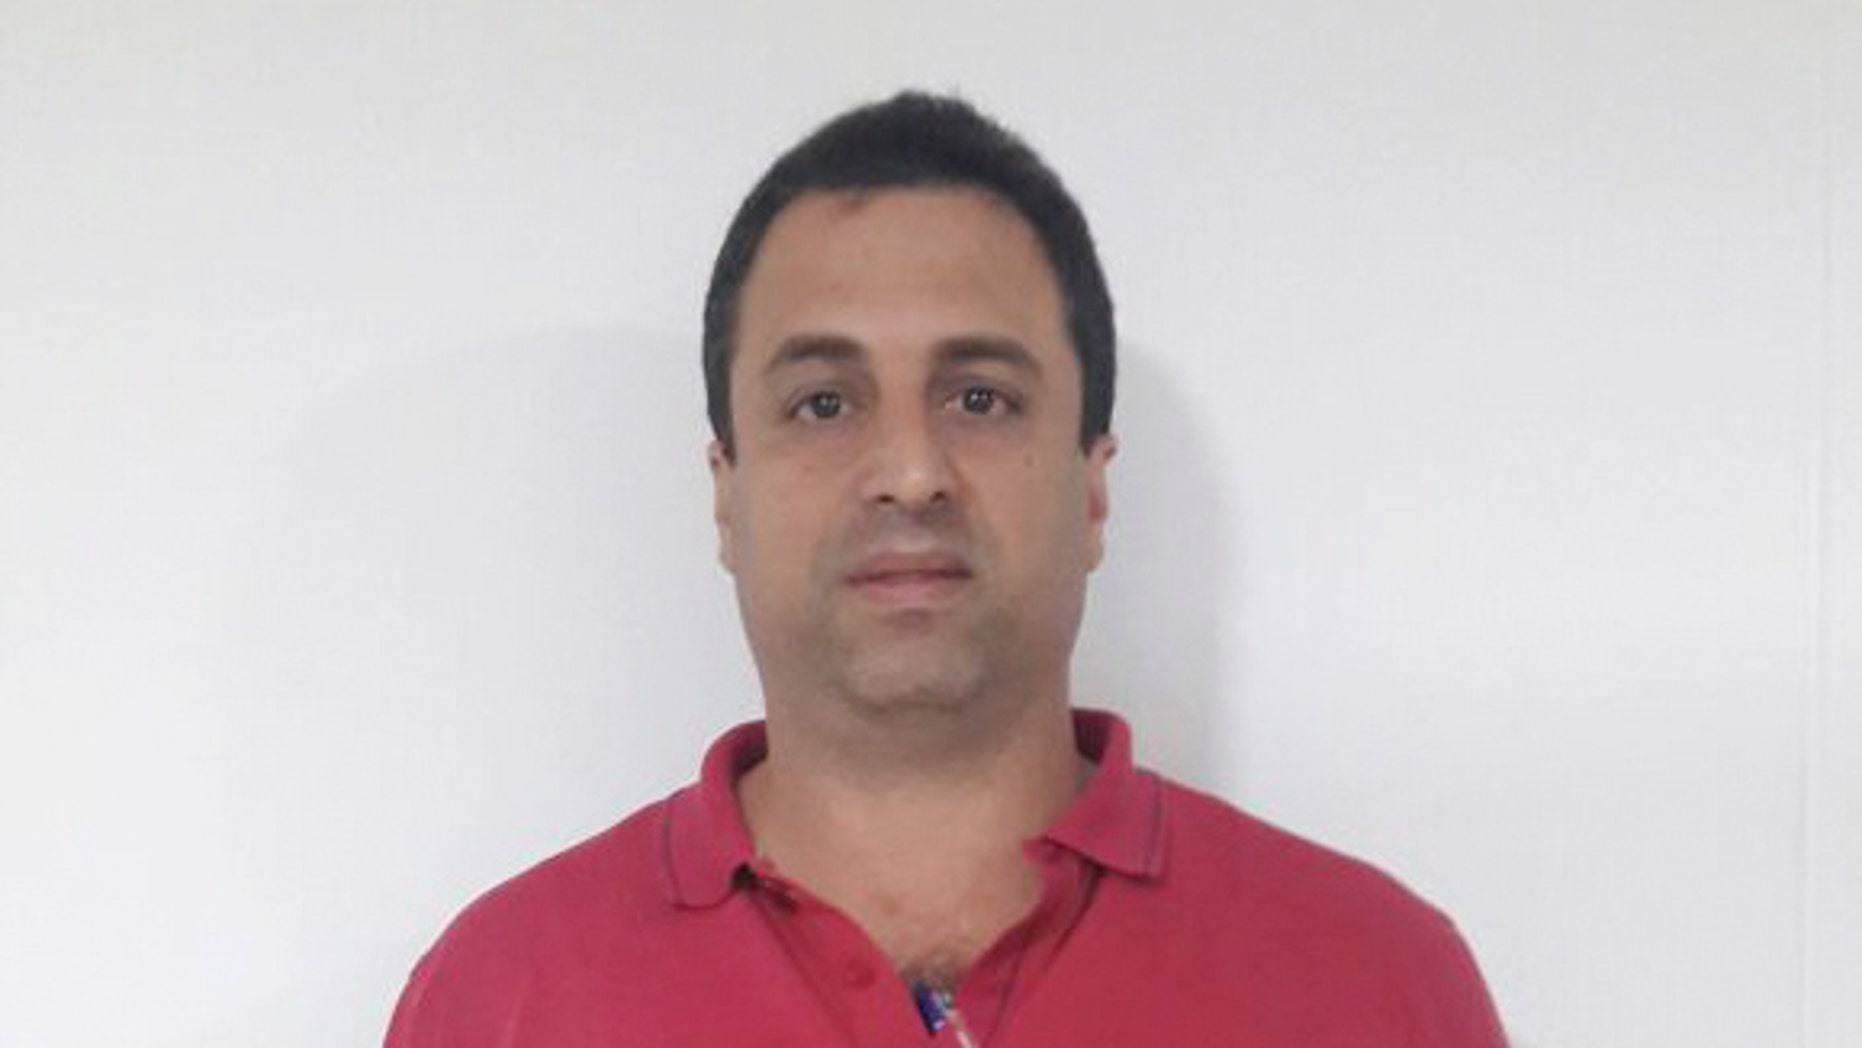 This photo released by Colombia's National Police shows Panama businessman Nidal Waked after he was arrested at the international airport in Bogota, Colombia, Wednesday, May 4, 2016. Waked is sought by the United States and accused of being a leader of an organization that laundered drug profits through a web of companies including a luxury mall, a bank and the duty-free zone at Panama City's international airport. (Colombia National Police via AP)